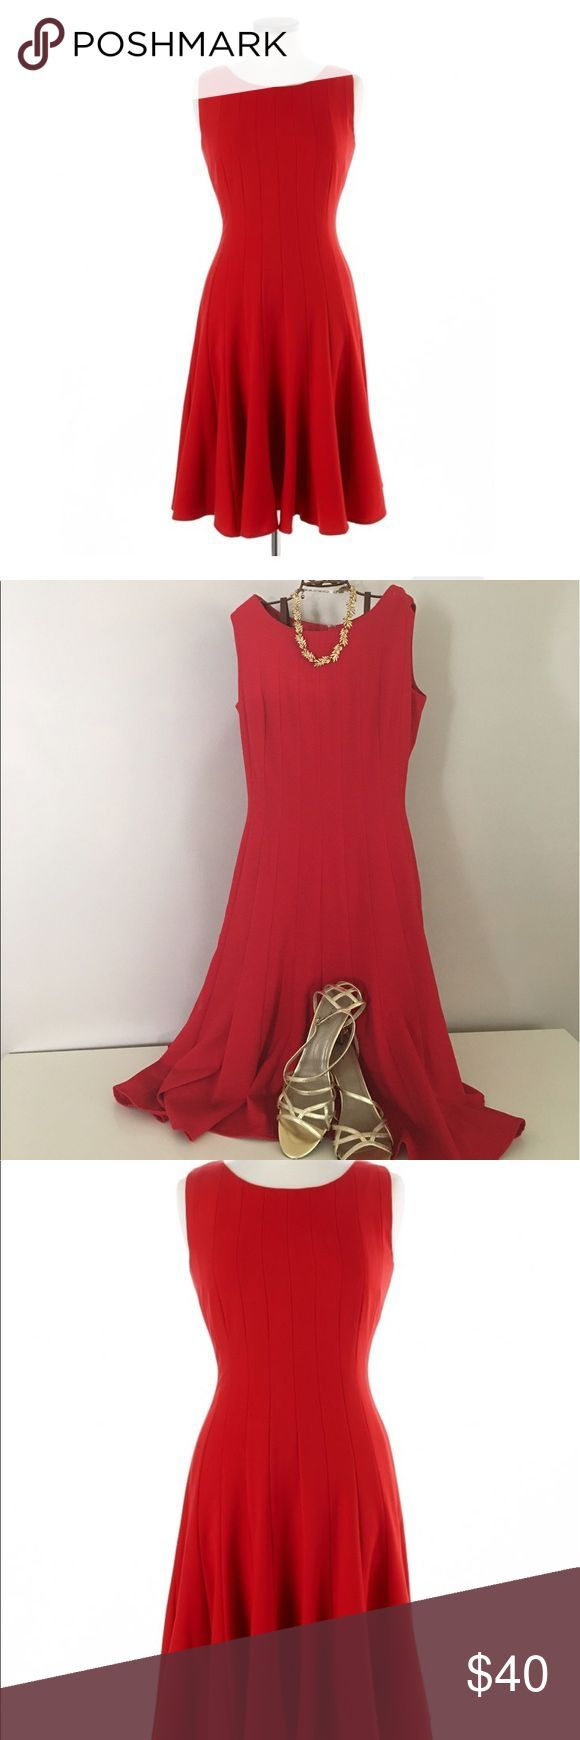 Nice Classic Dresses Ellen Tracy Sleeveless Red A-line dress 💋LADY IN RED 💋Ellen Tracy Sleevele... Check more at http://24store.tk/fashion/classic-dresses-ellen-tracy-sleeveless-red-a-line-dress-%f0%9f%92%8blady-in-red-%f0%9f%92%8bellen-tracy-sleevele/